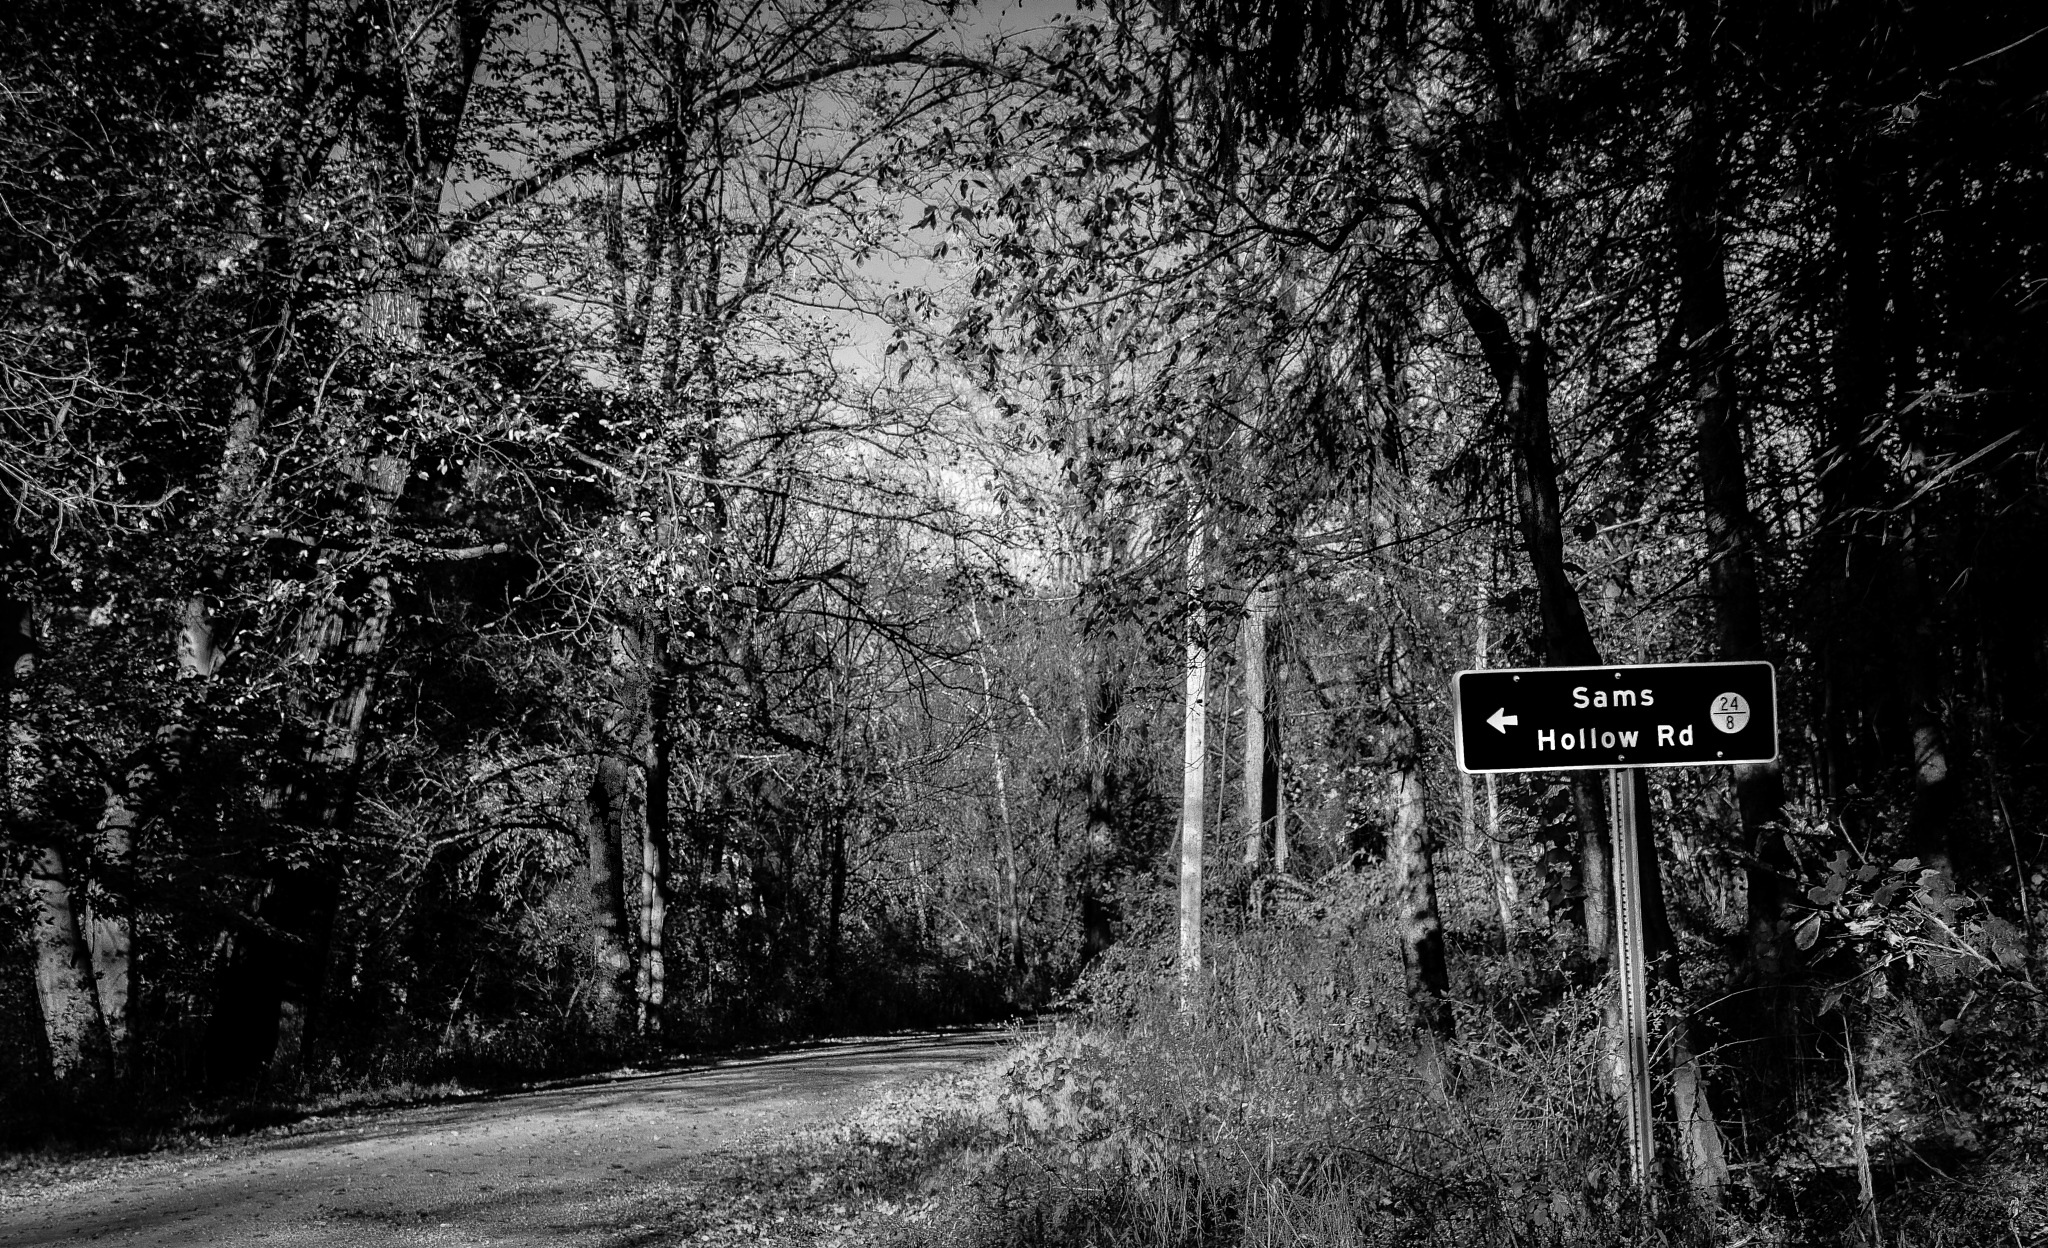 Sams Hollow Road by danphares